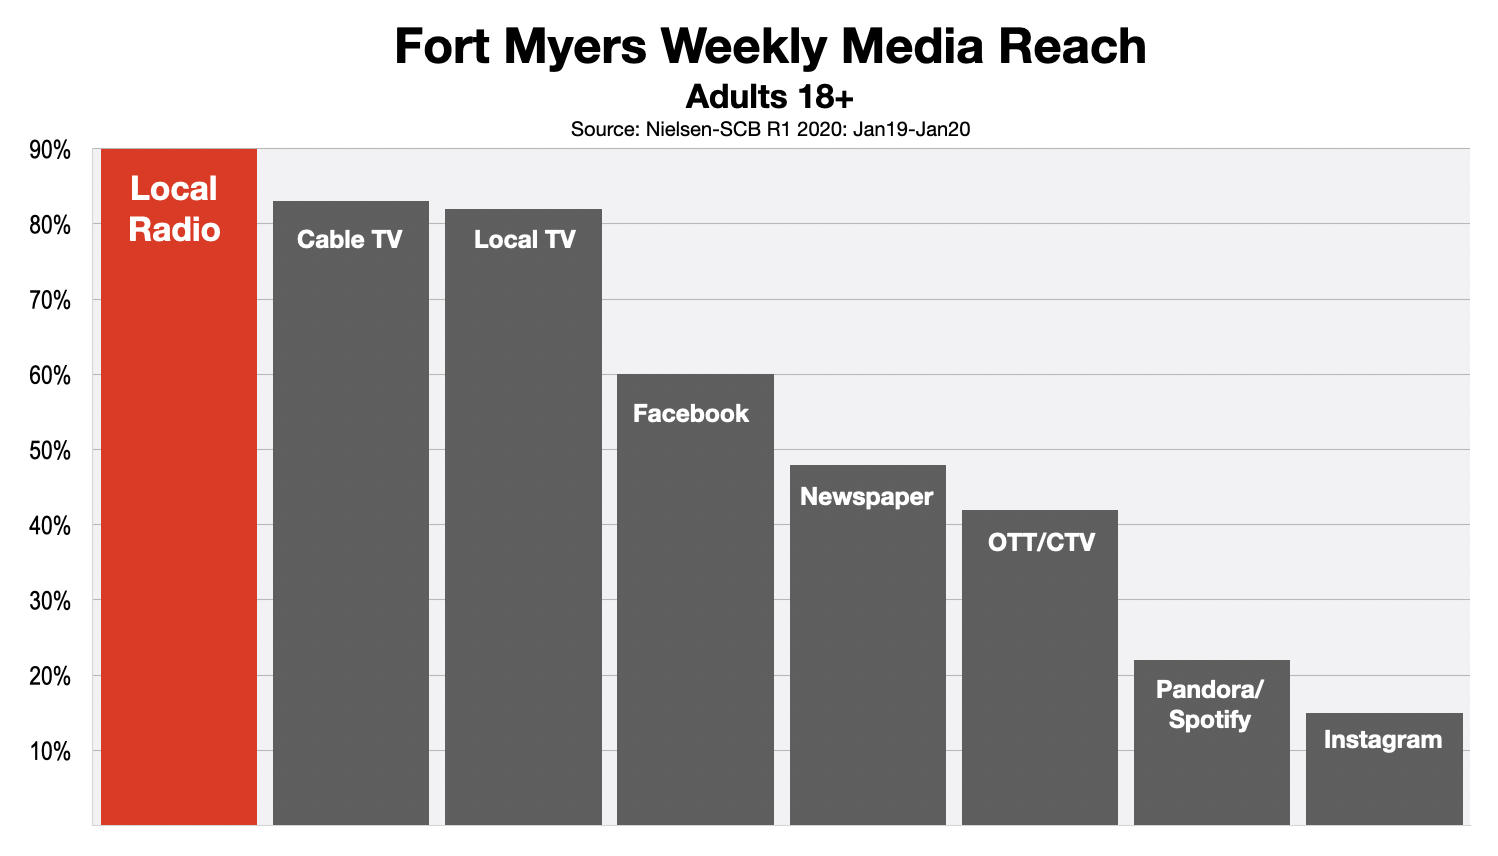 Advertising In Fort Myers Adult Media Reach (2020)